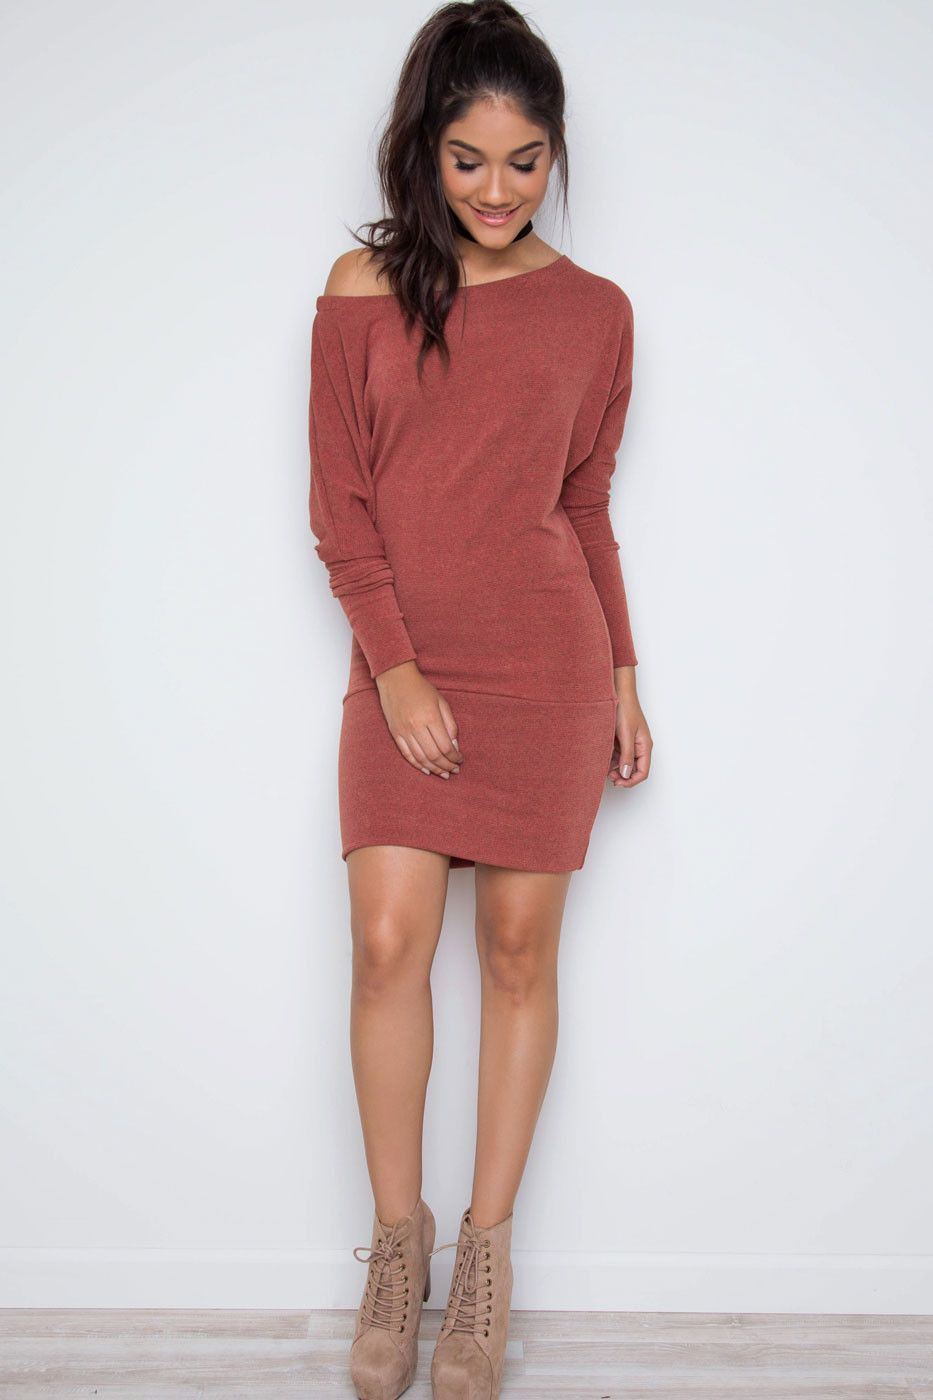 - Details - Size Guide - Model Stats - Contact Dare to dream in this rust Maureen Dress! Featuring a lightweight, ribbed-knit fabric with stretch. Boatneck. Long, dolman sleeves. Optional off-the-shou